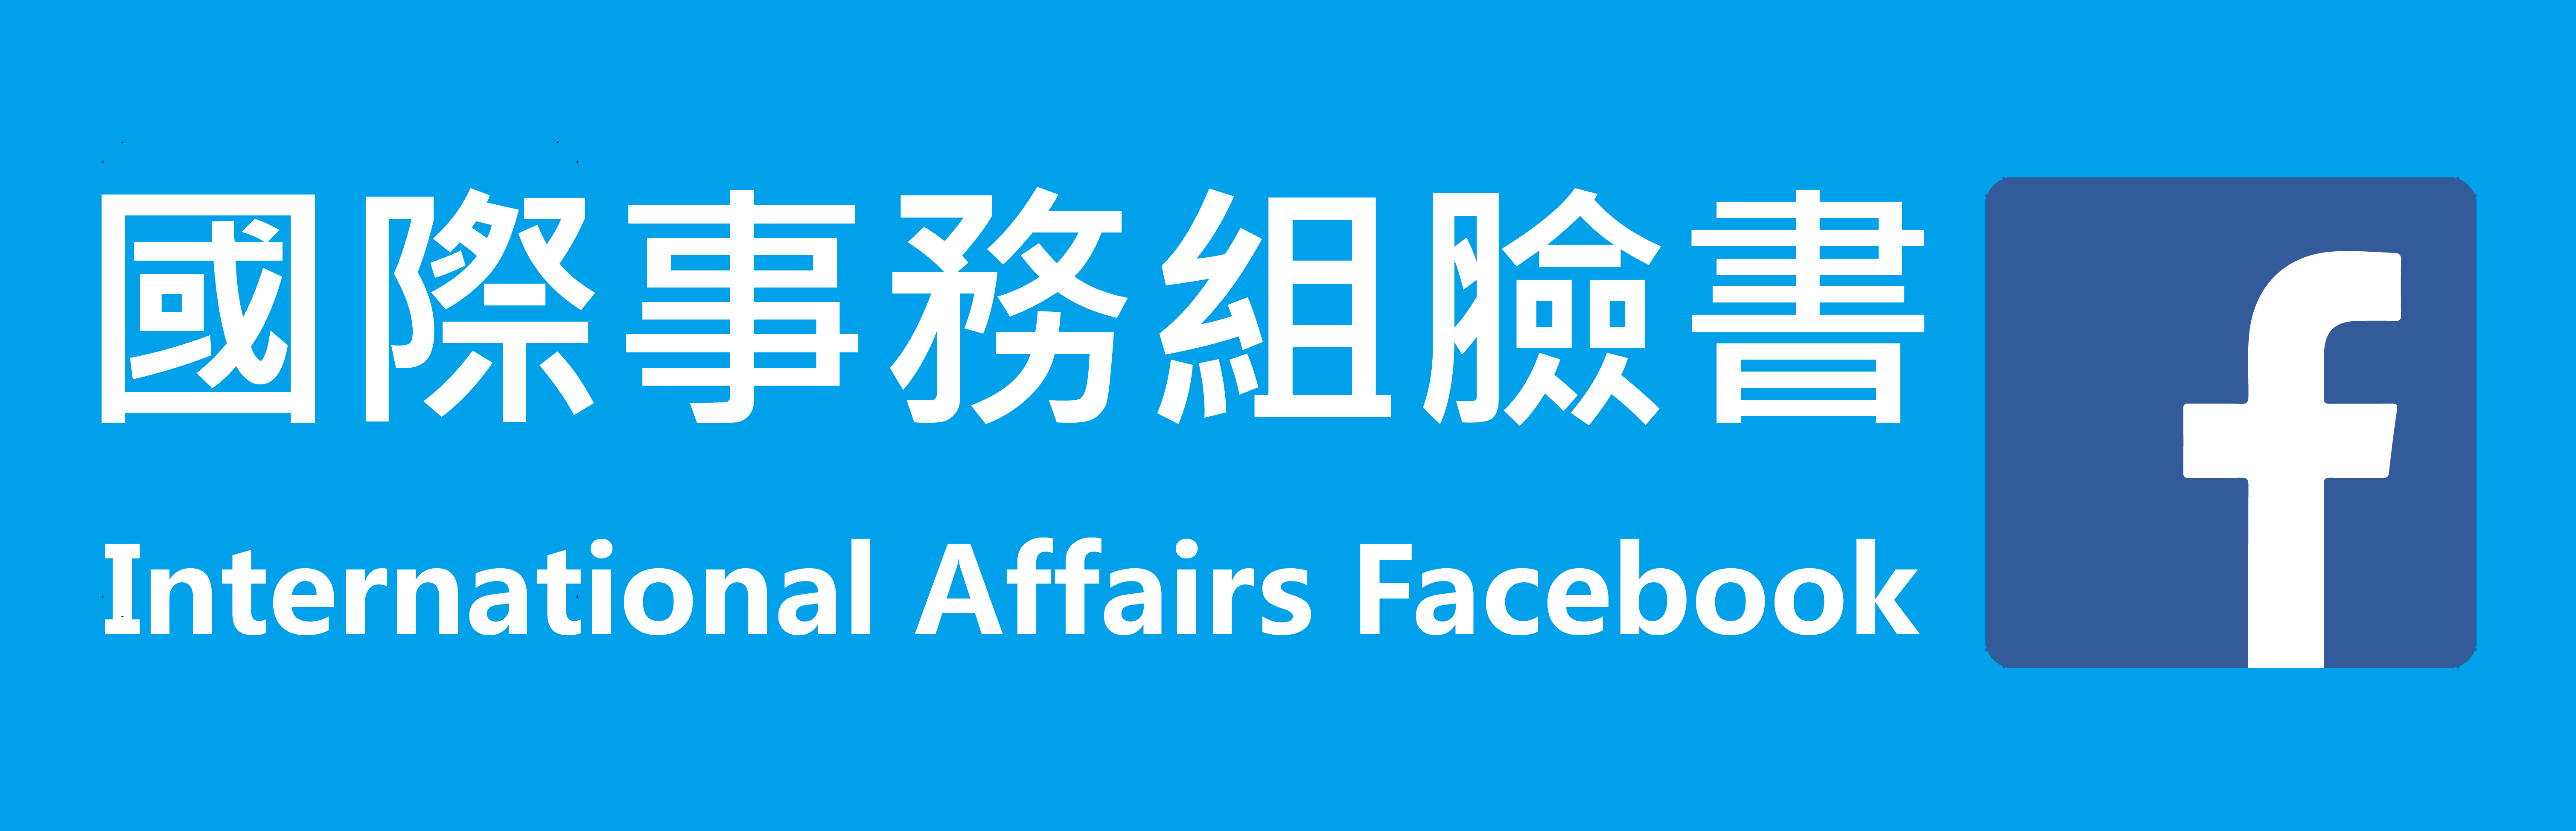 International Affairs Facebook